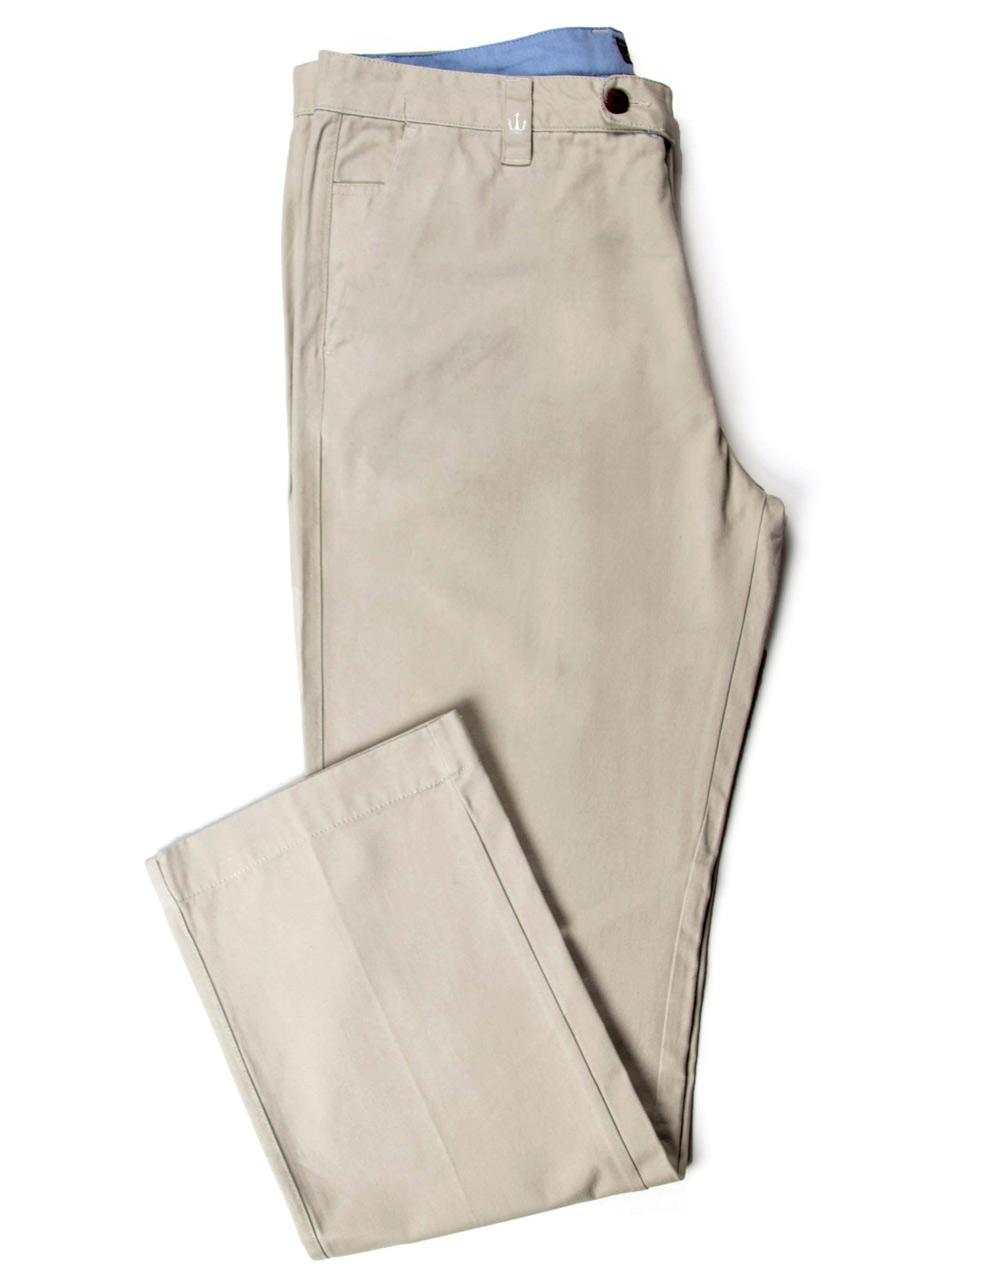 Raw chinos trousers